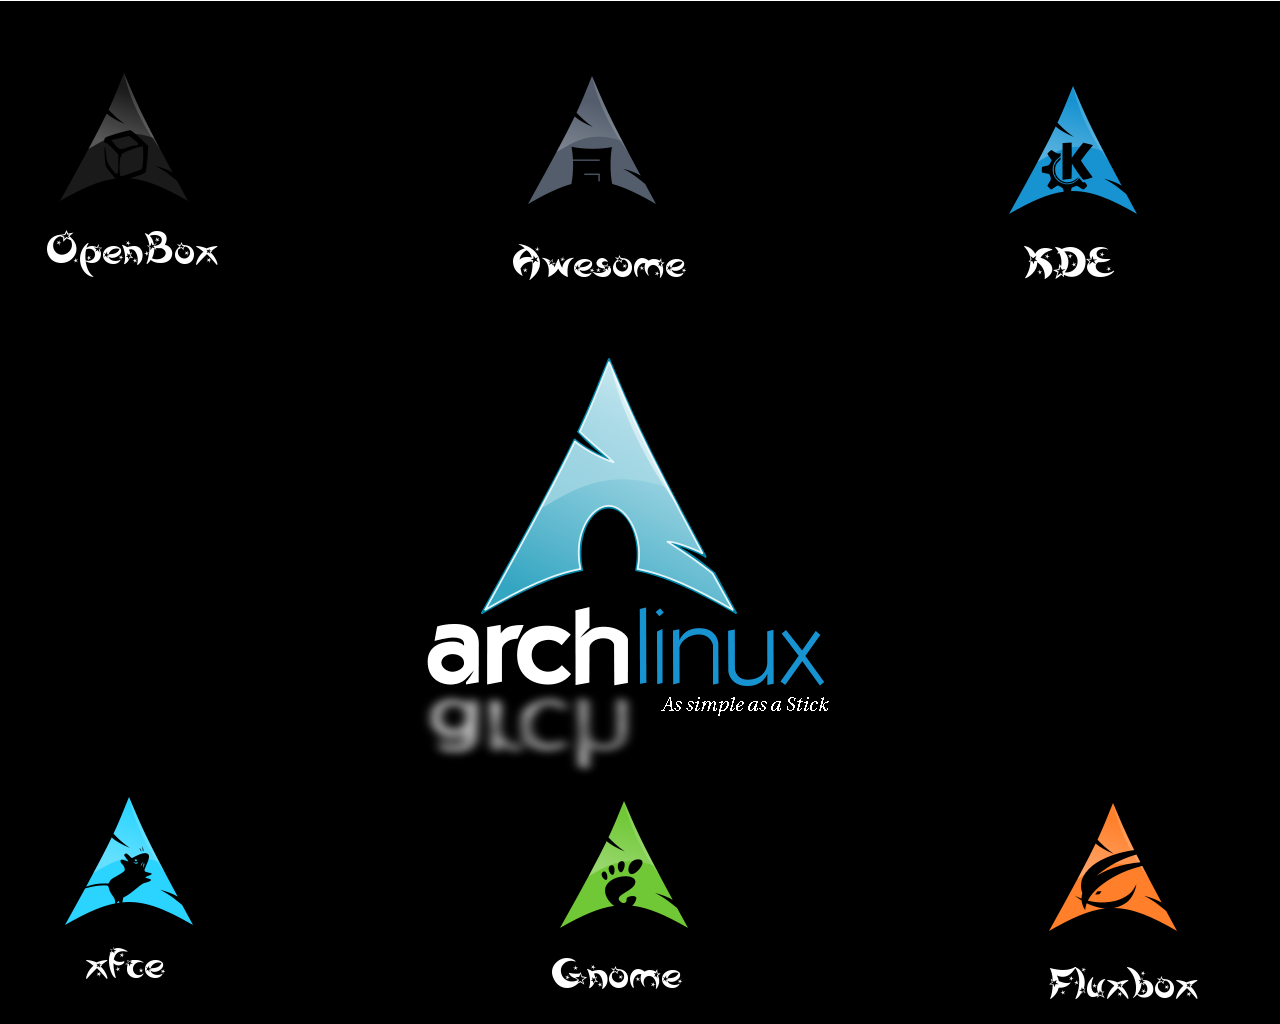 archlinux-wally.png